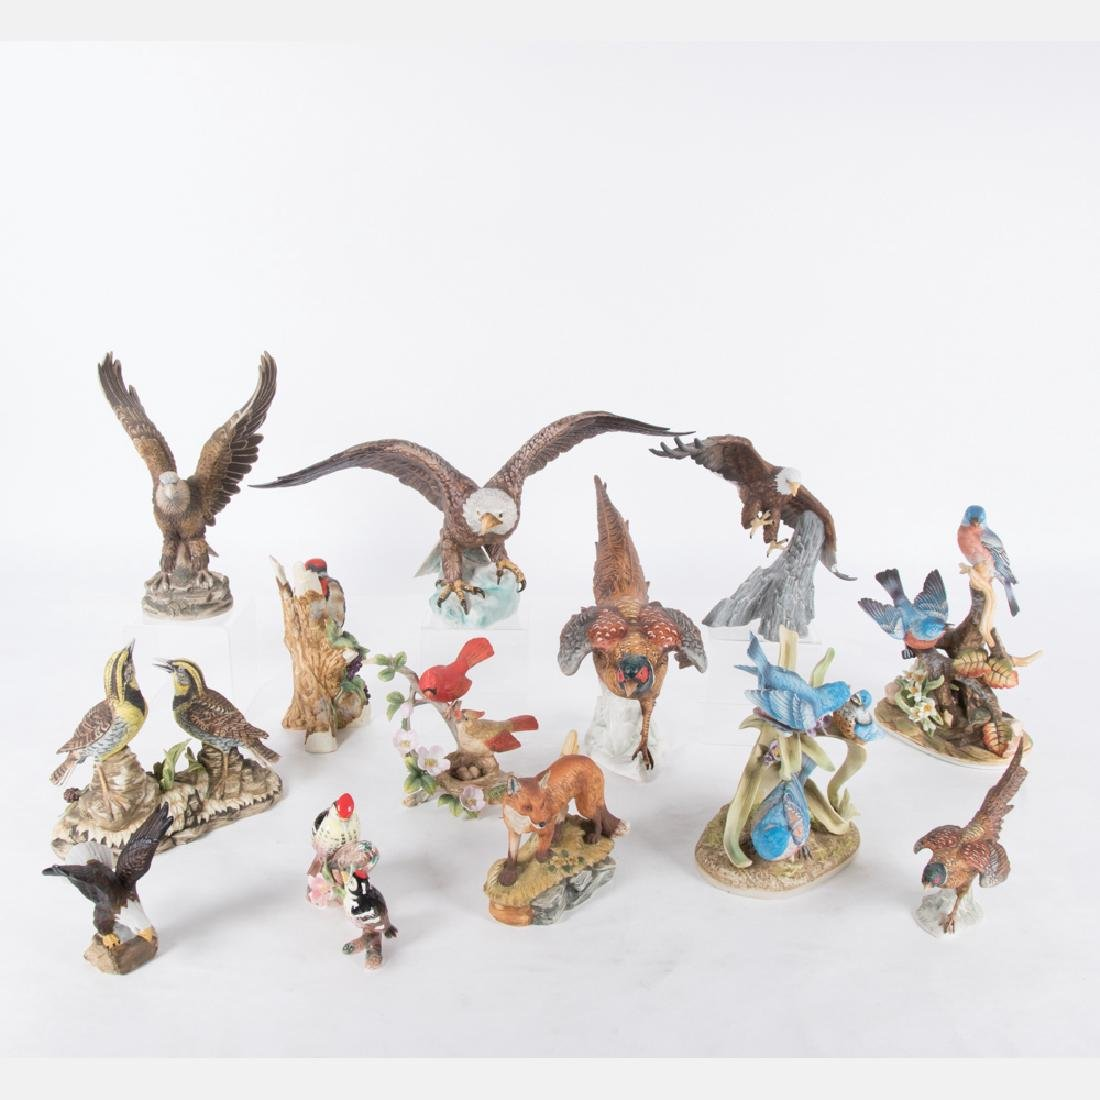 A Collection of Bisque Porcelain Bird and Animal Form